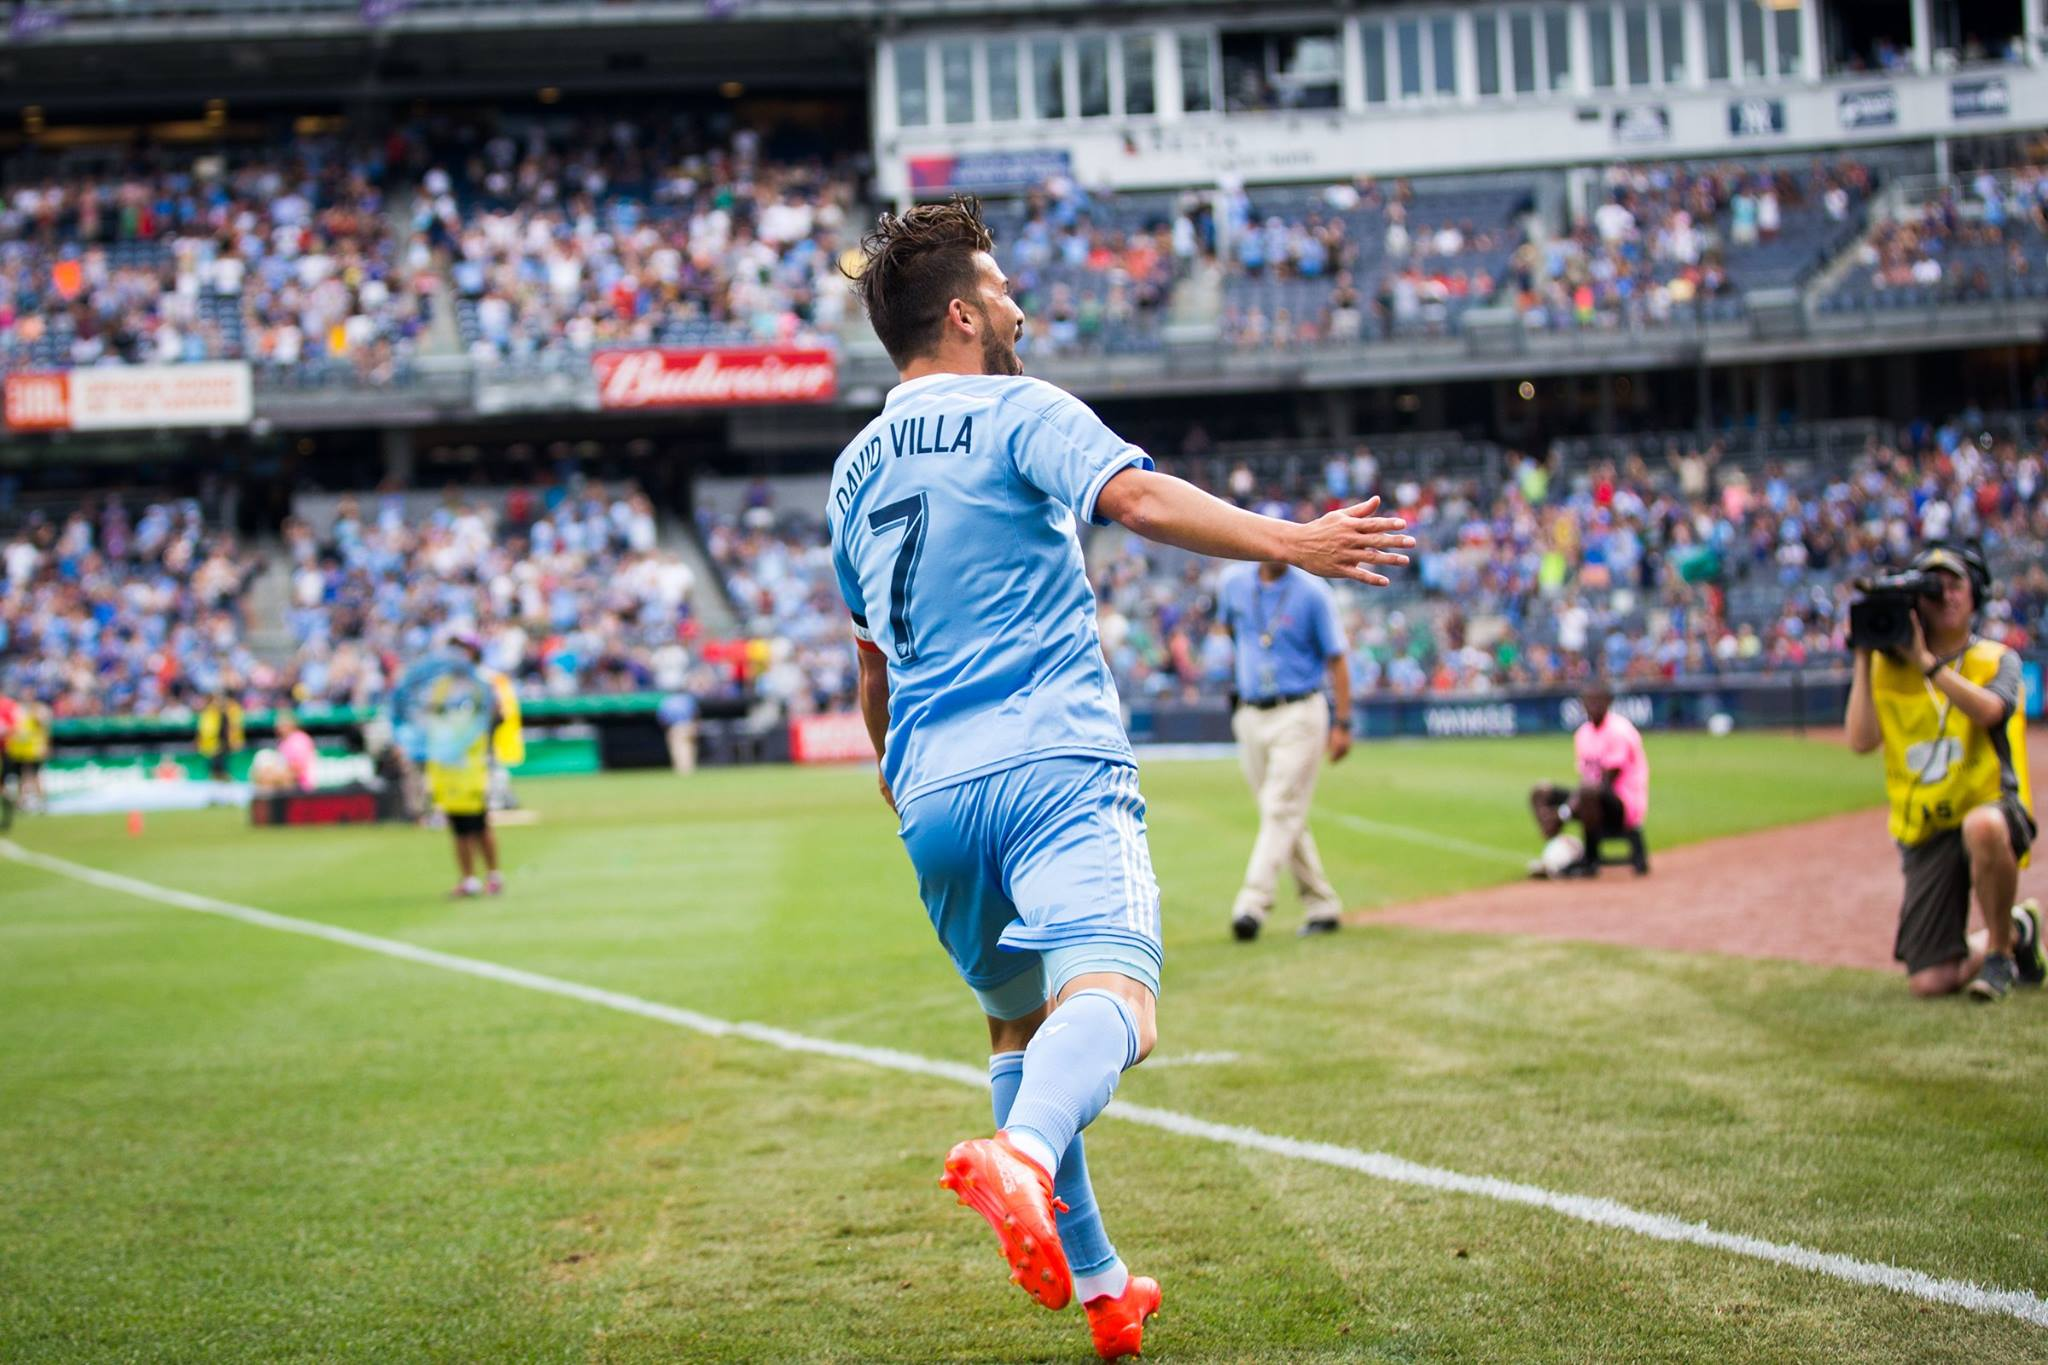 New York City FC, MLS, Major League Soccer, David Villa